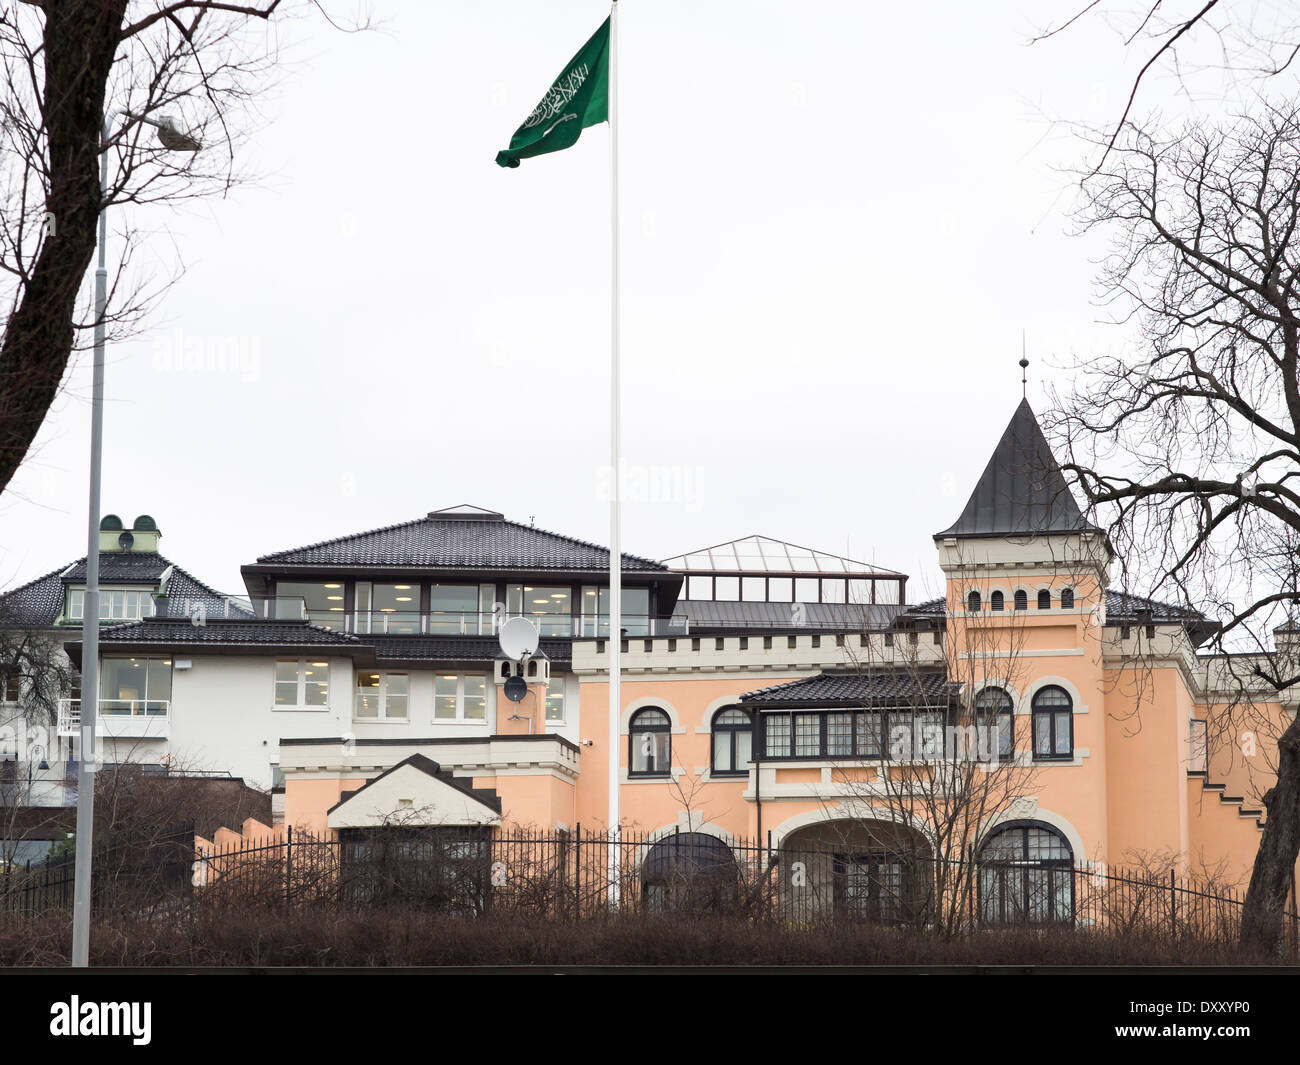 Building and flag of the Embassy of the Kingdom of Saudi Arabia in Oslo Norway - Stock Image